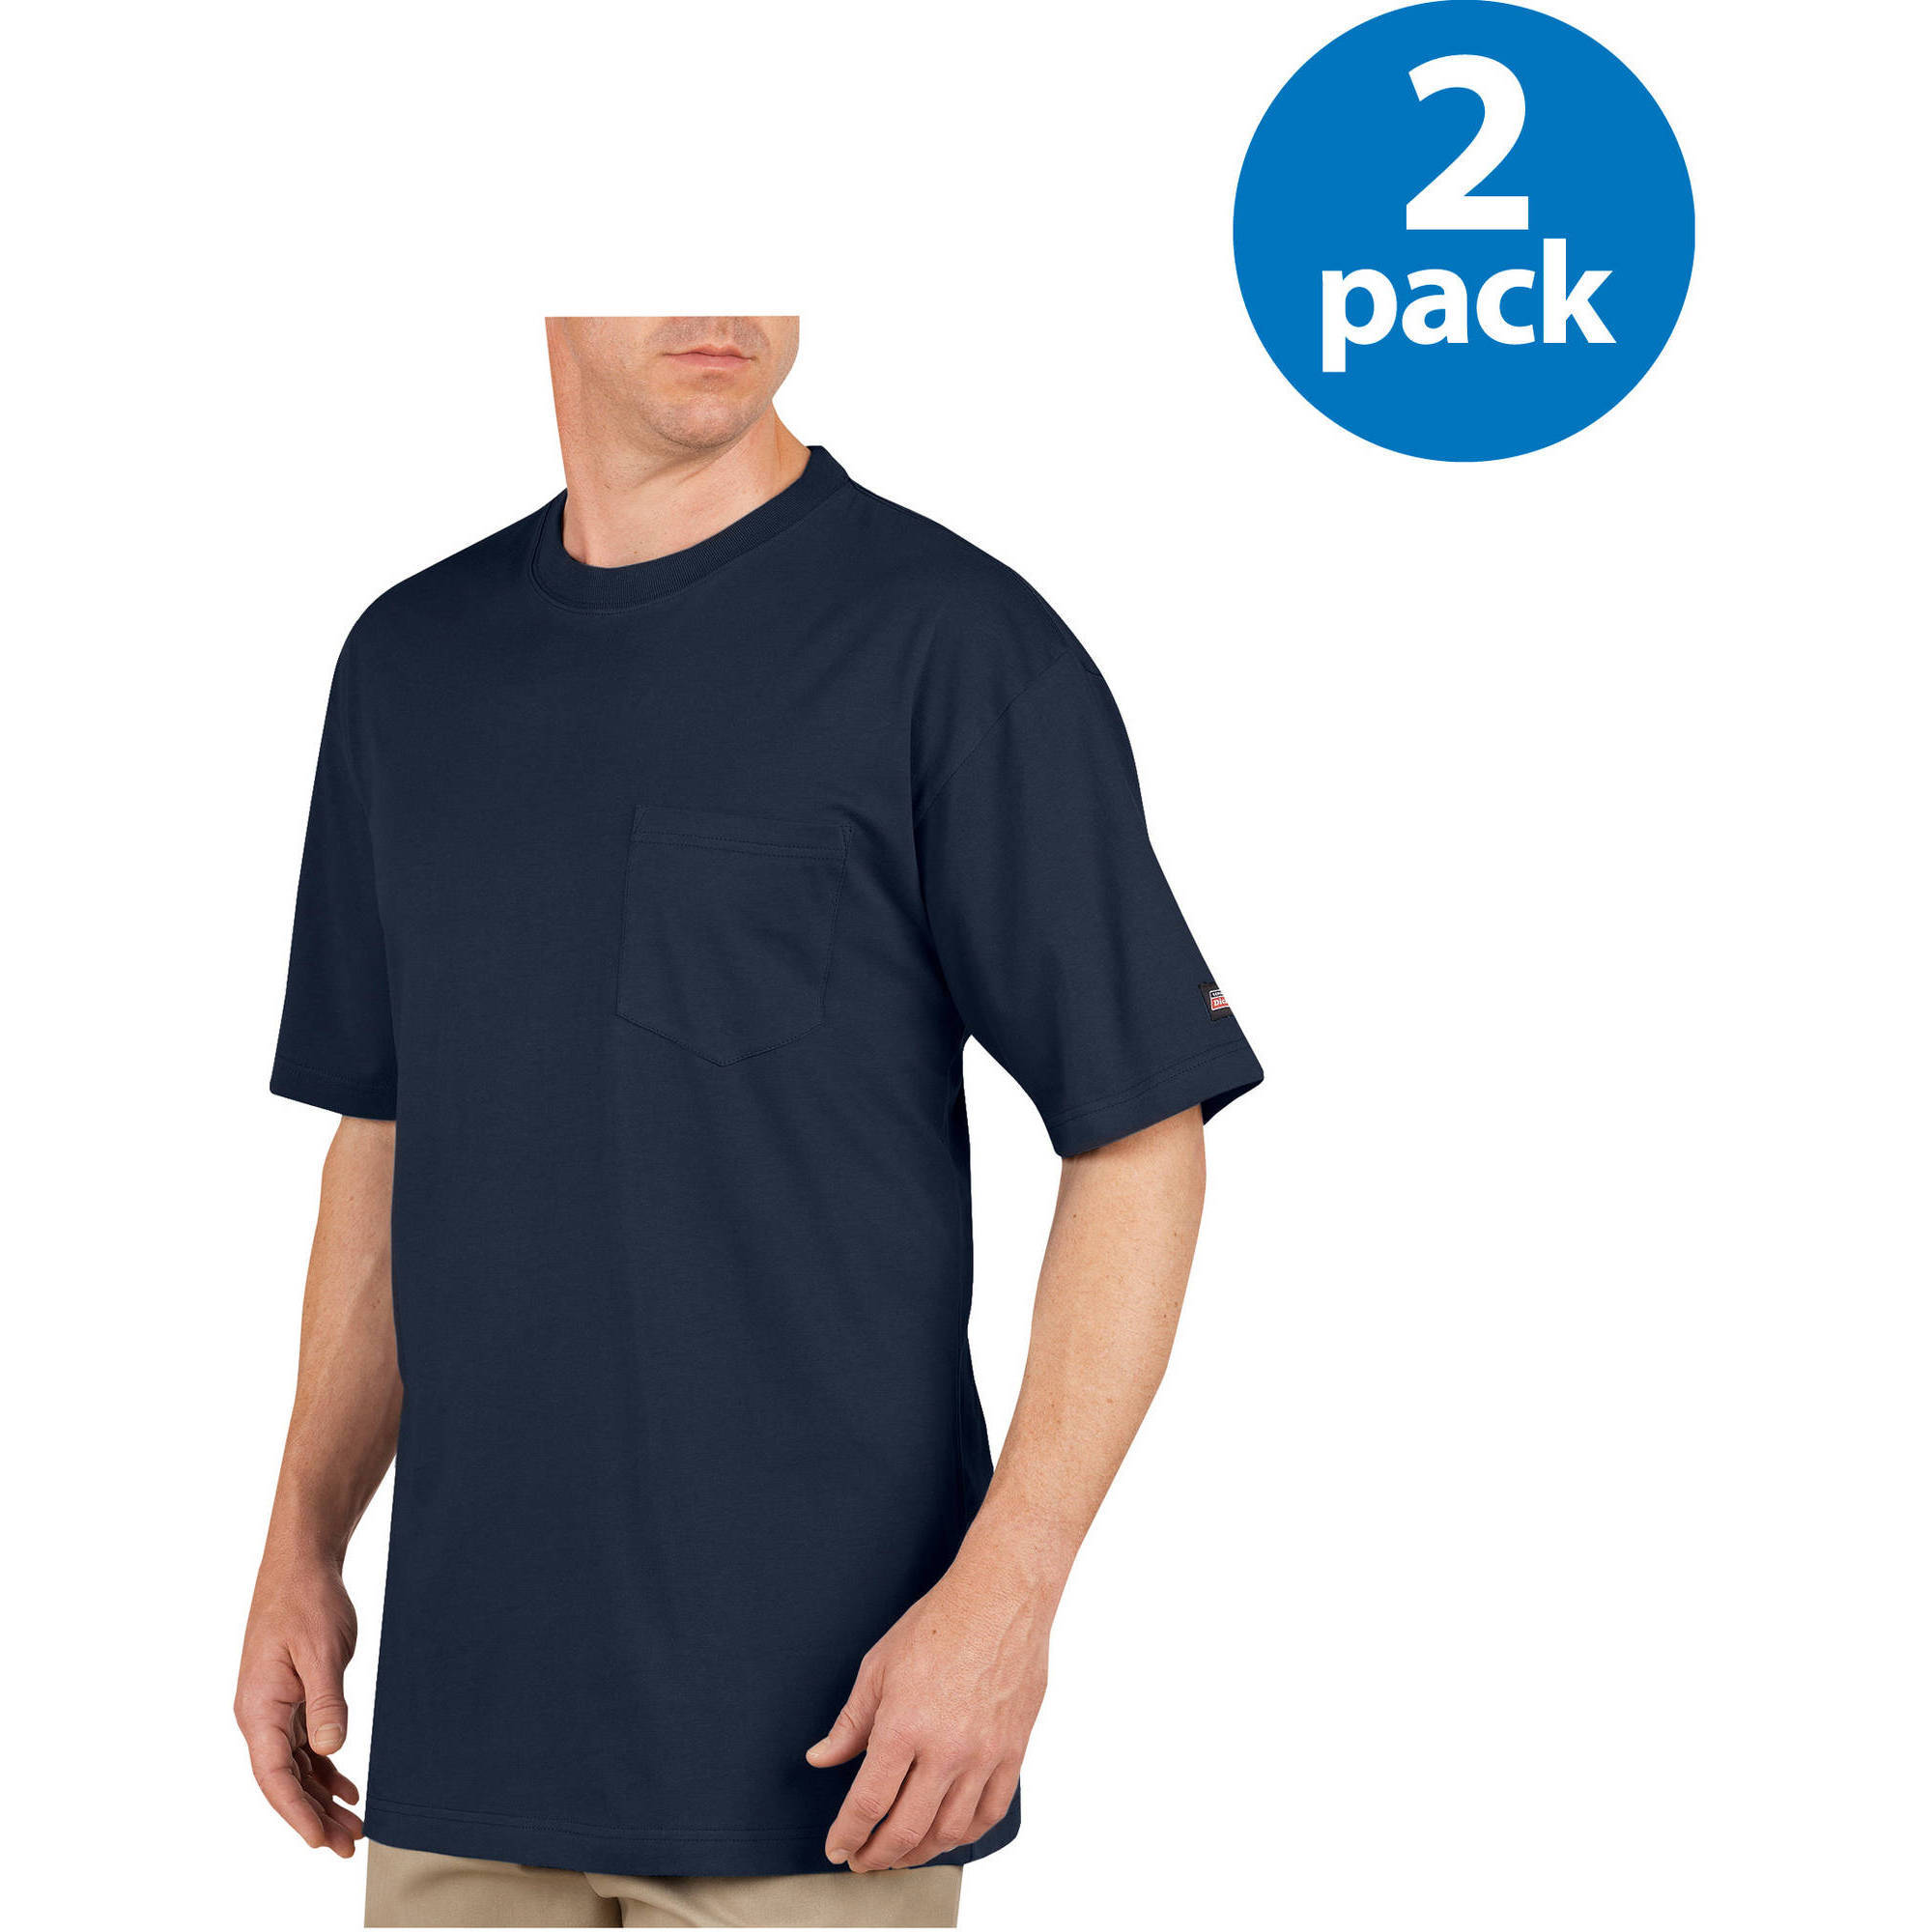 Genuine Dickies Big and Tall Men���s Heavy Weight Pocket Tee- 2 pack